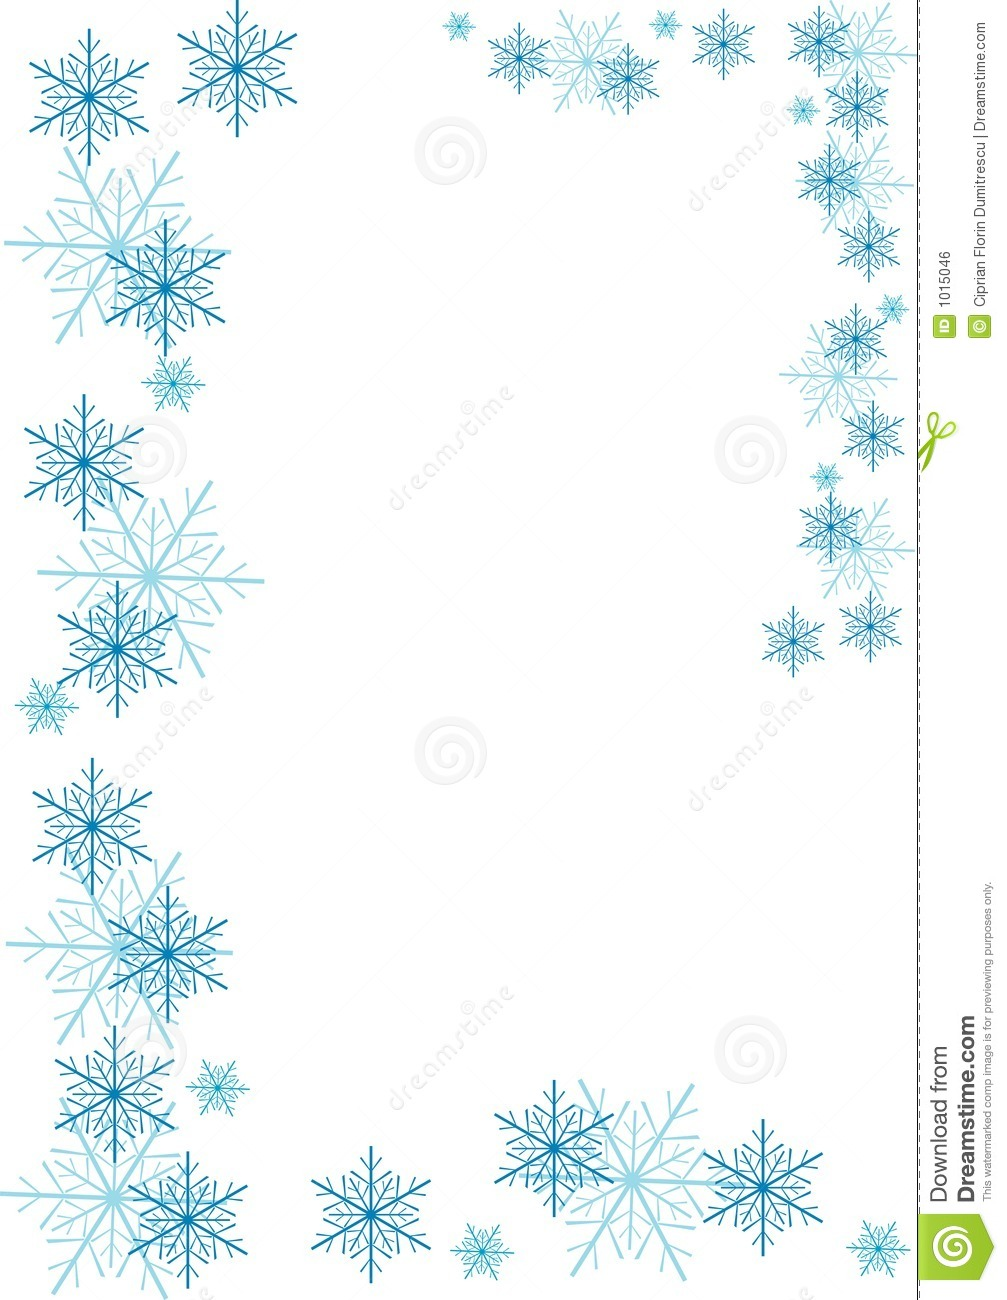 Snowflakes Border Royalty Free Stock Image - Image: 1015046